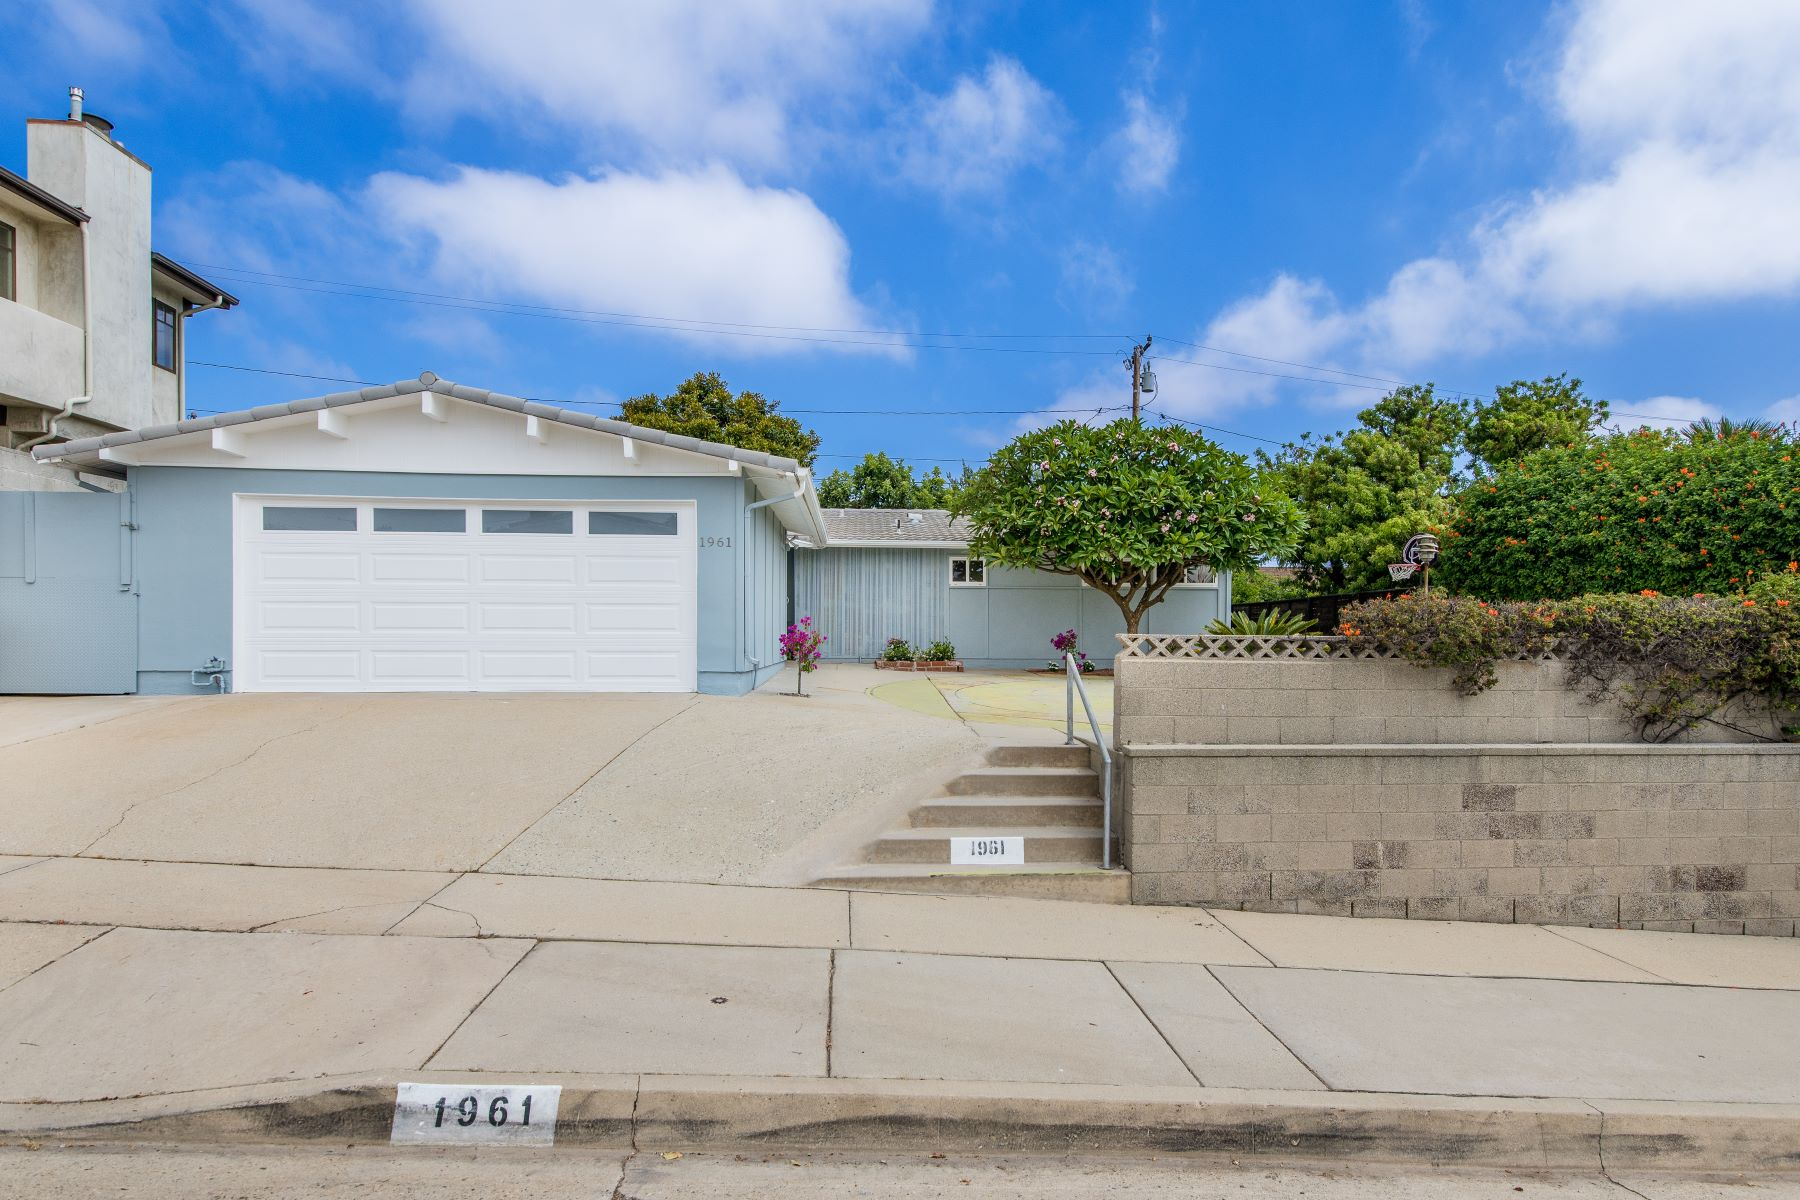 Single Family Homes for Sale at 1961 Upland Street, Rancho Palos Verdes, CA 90275 1961 Upland Street Rancho Palos Verdes, California 90275 United States